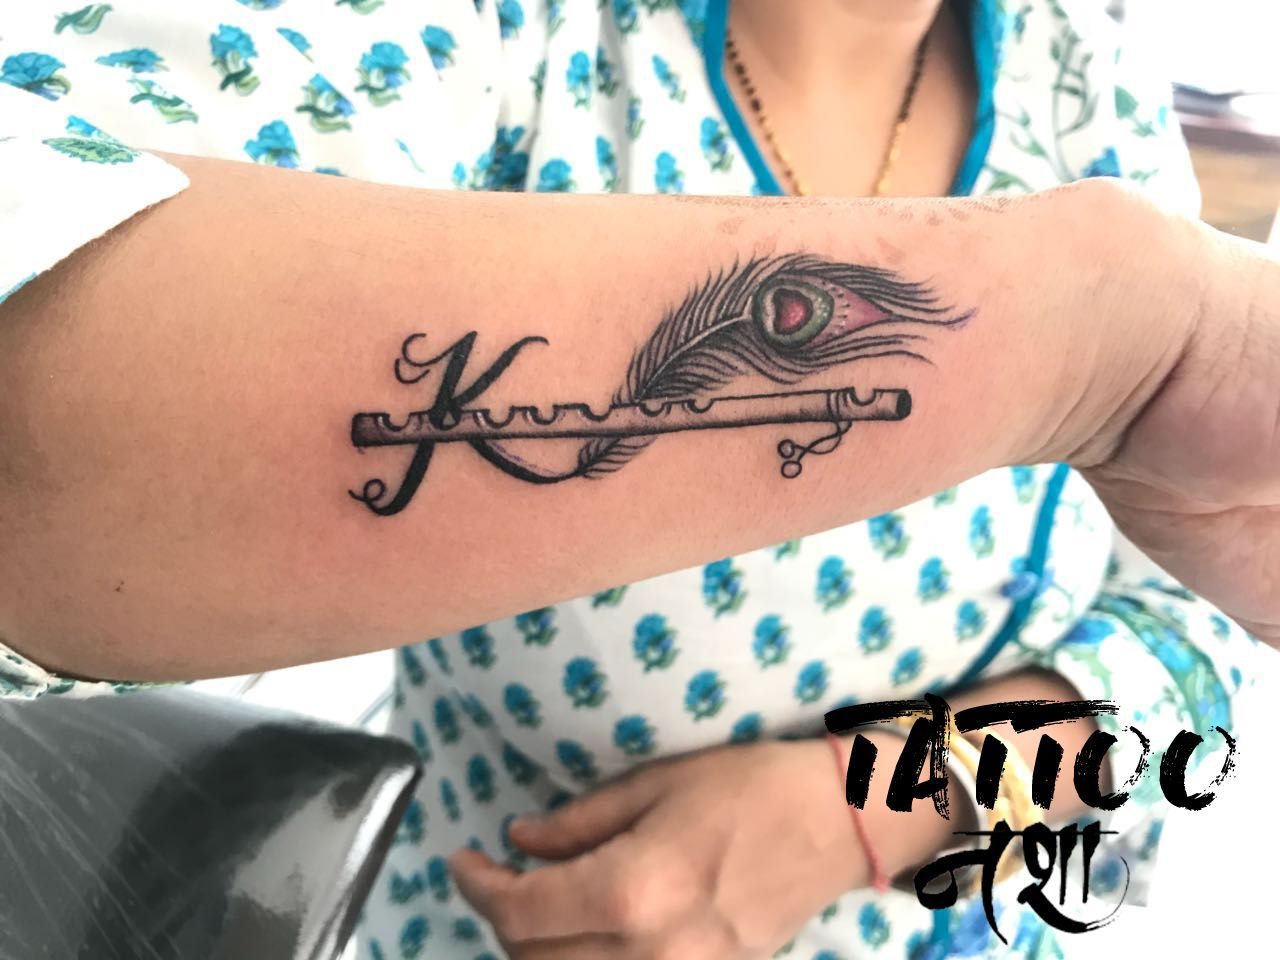 Hand Name Tattoo Ideas Joaoleitao Com Tattoo On Hand That Is A Bold Statement With Right Design You Can Make It Hand Tattoos Name Tattoo On Hand Flute Tattoo